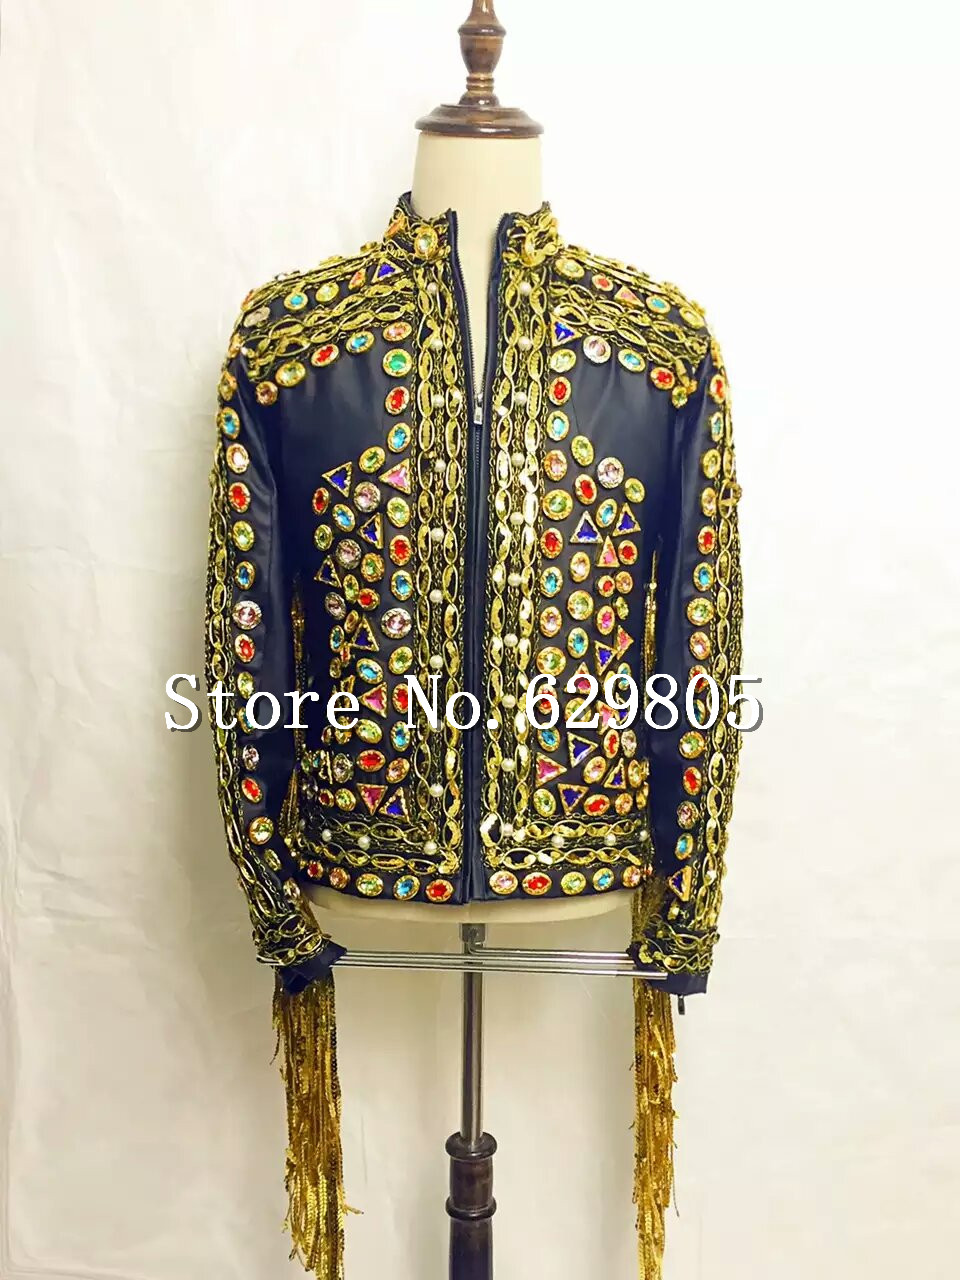 Fashion Design Vintage Baroque Rhinestones Leather Jacket Tassel Sequins Blazer Top Male Singer Outfit Wear Stage Stones Costume